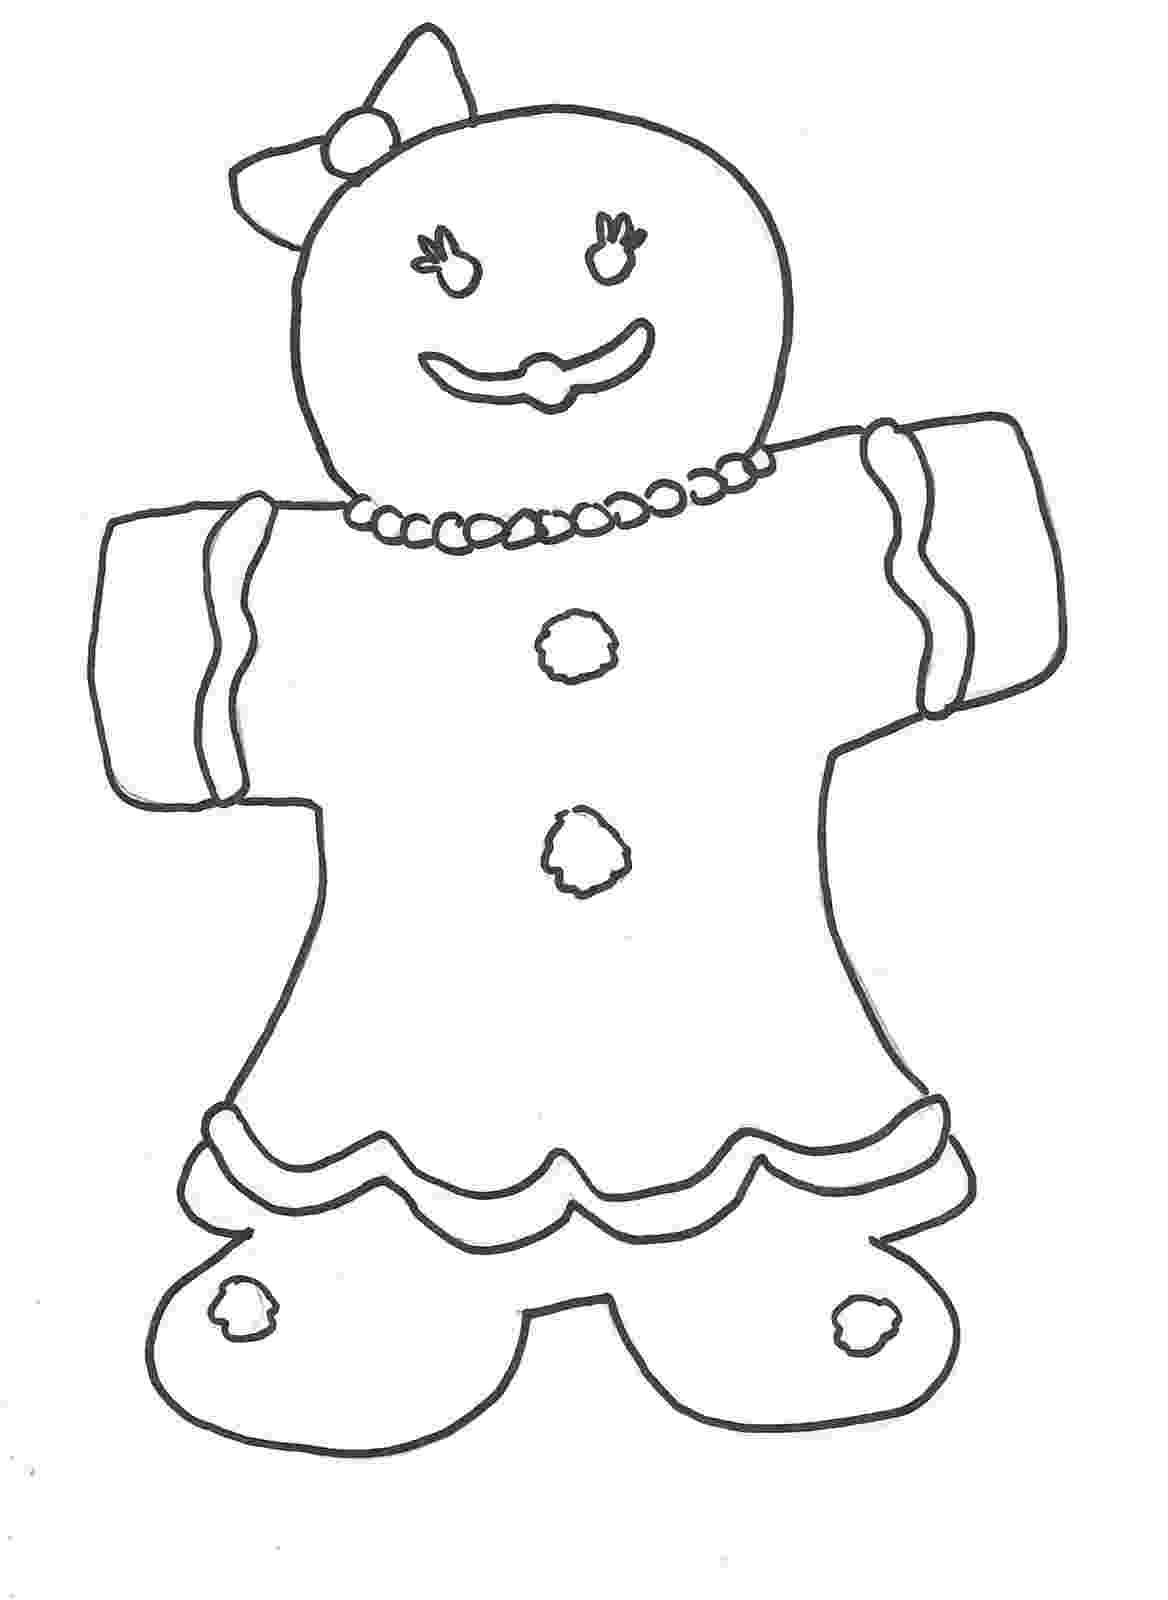 gingerbread coloring page gingerbread man coloring pages to download and print for free coloring gingerbread page